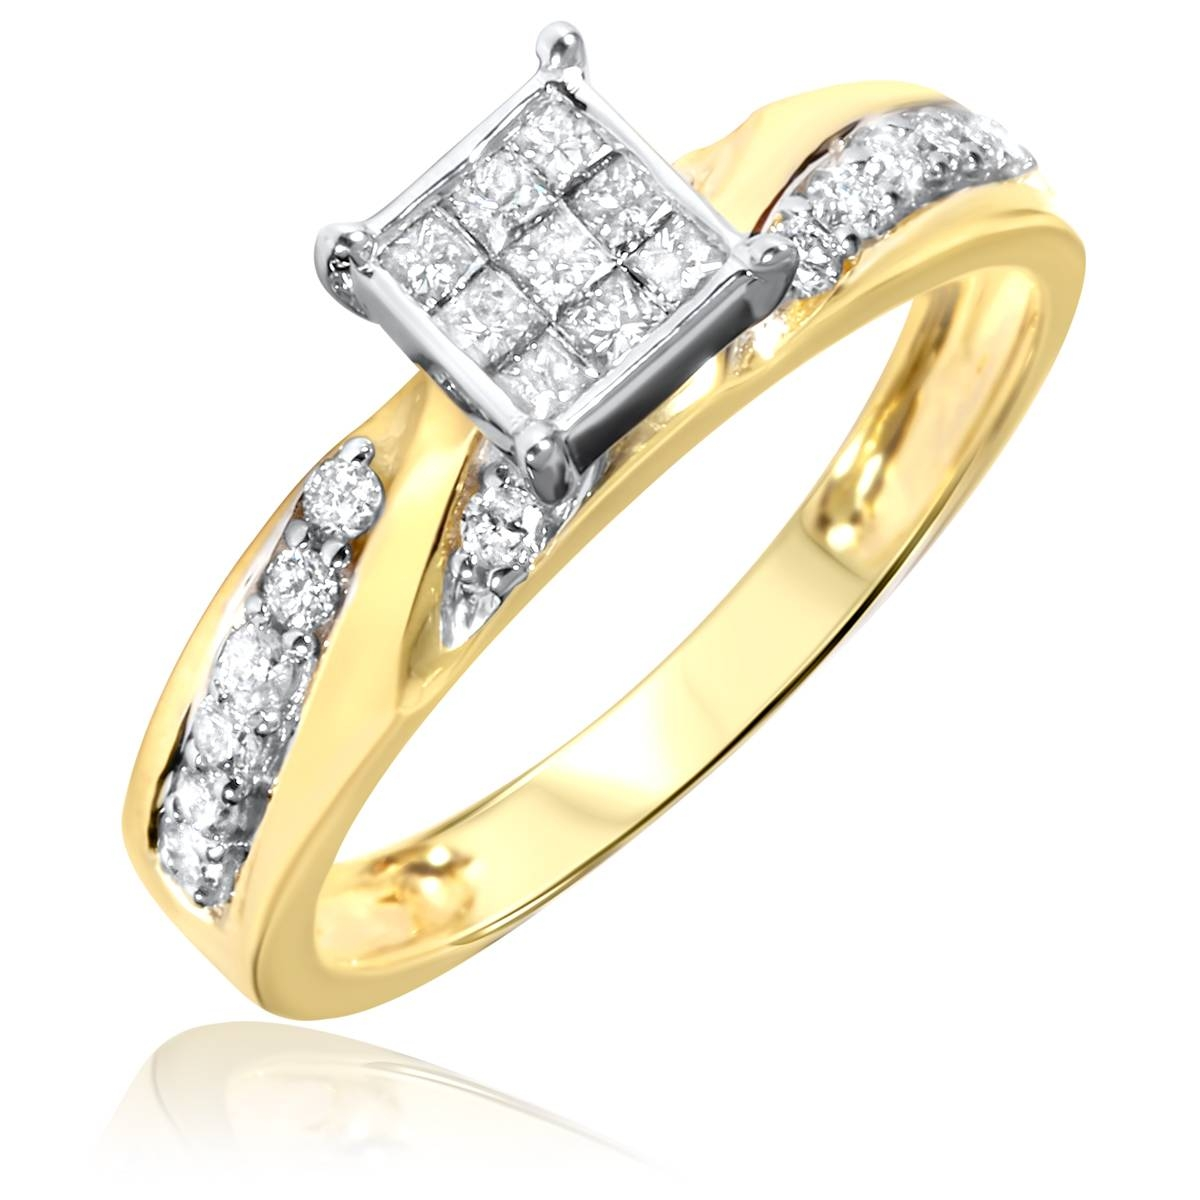 1 Carat Diamond Trio Wedding Ring Set 14K Yellow Gold With Yellow Gold Wedding Rings For Women (View 2 of 15)